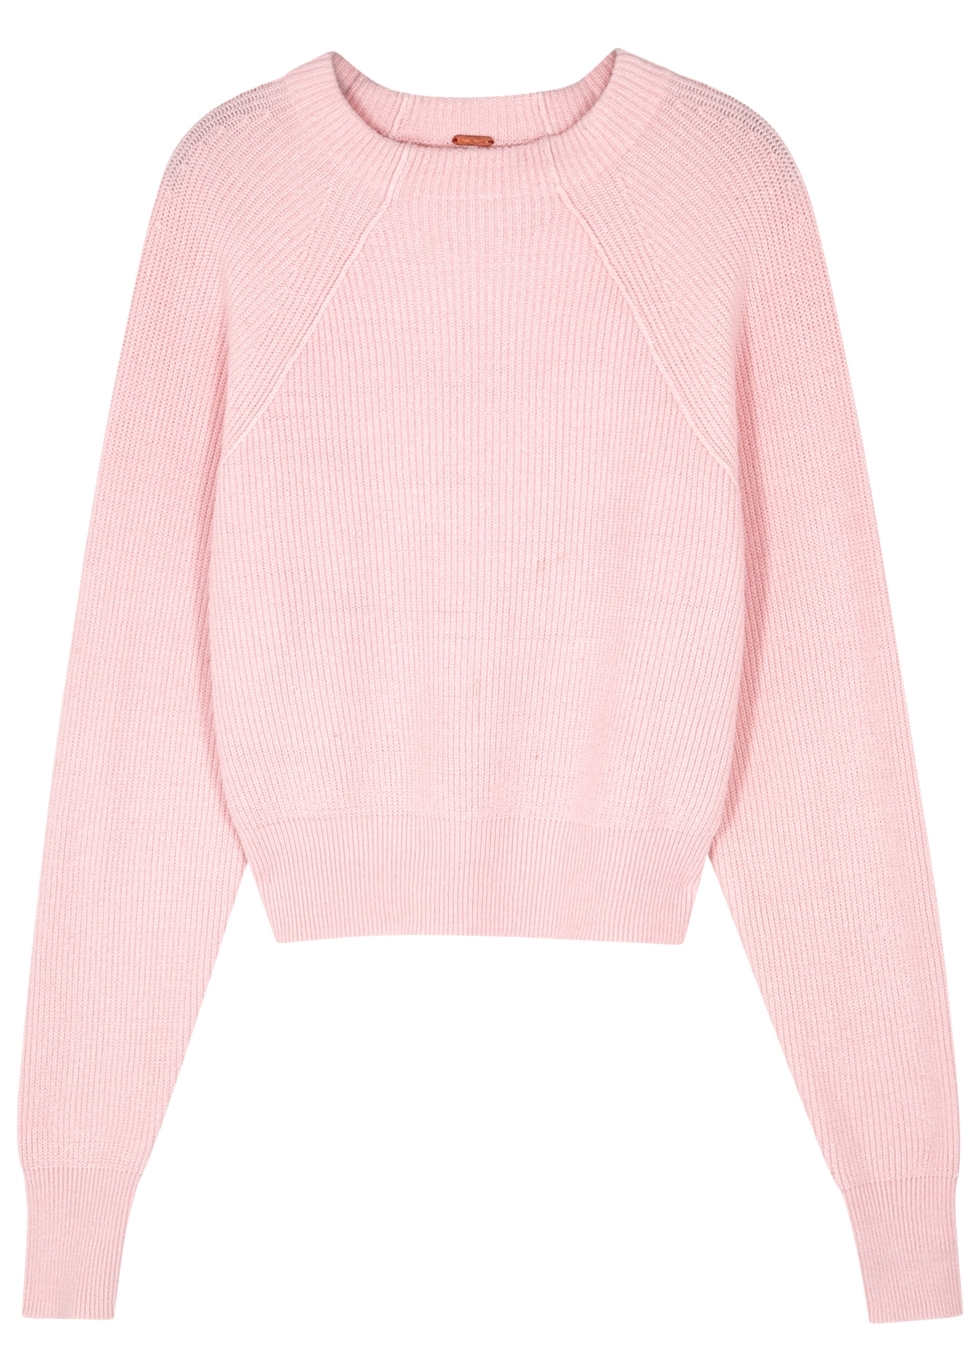 9264e4e90a Women s Designer Knitwear and Jumpers - Harvey Nichols